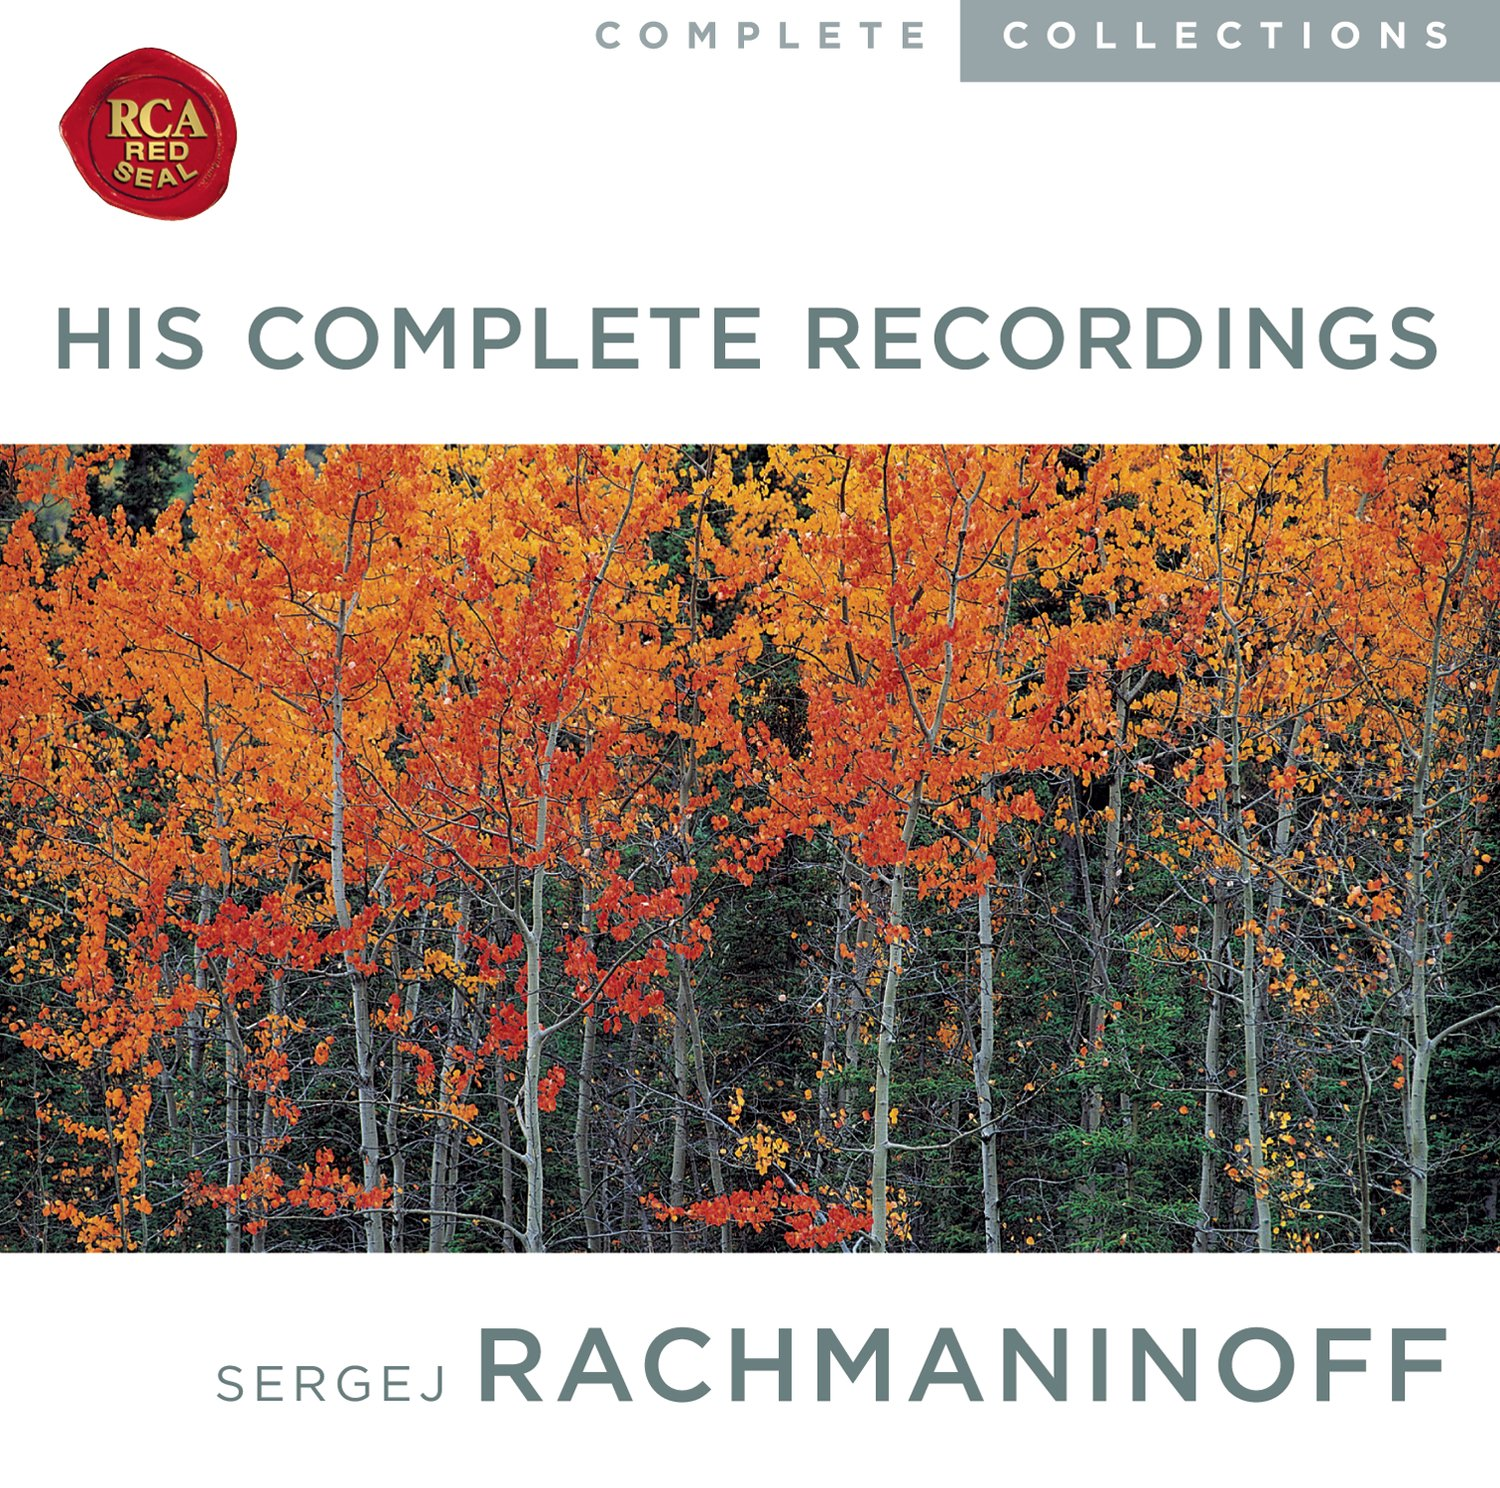 Rachmaninoff: His Complete Recordings by Sony Classical